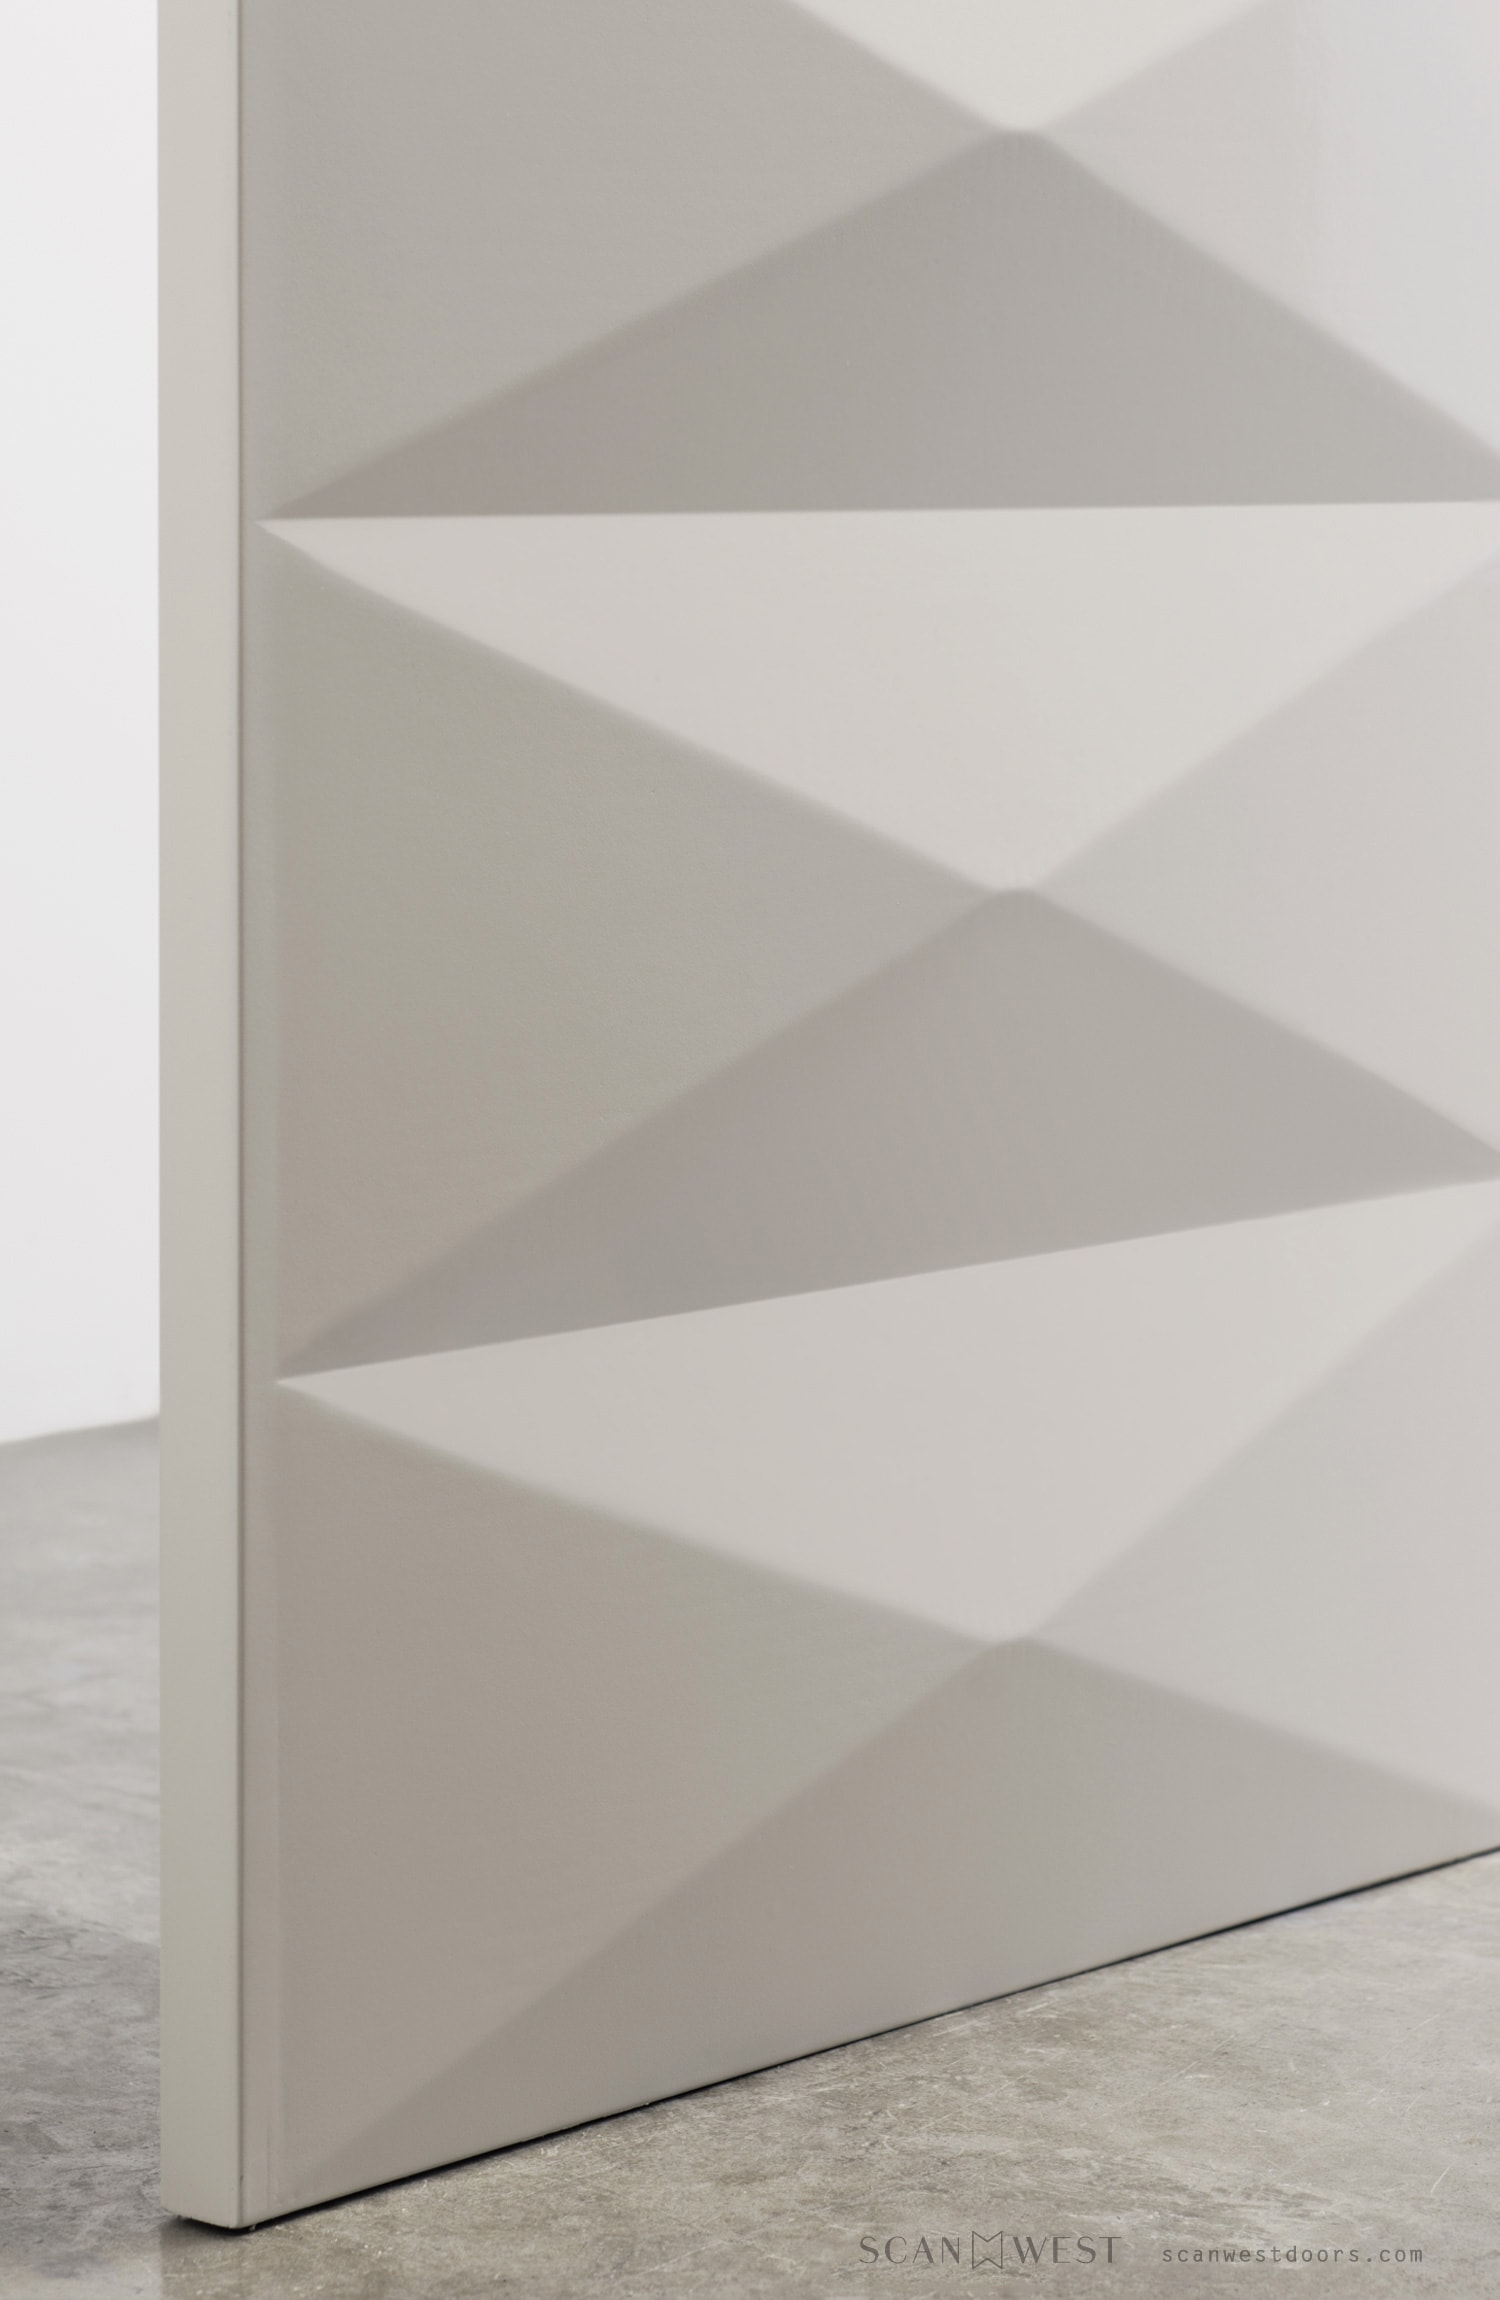 ScanWest Doors - DECO - Exterior & Interior Door - Texture Profile in White Lacquer